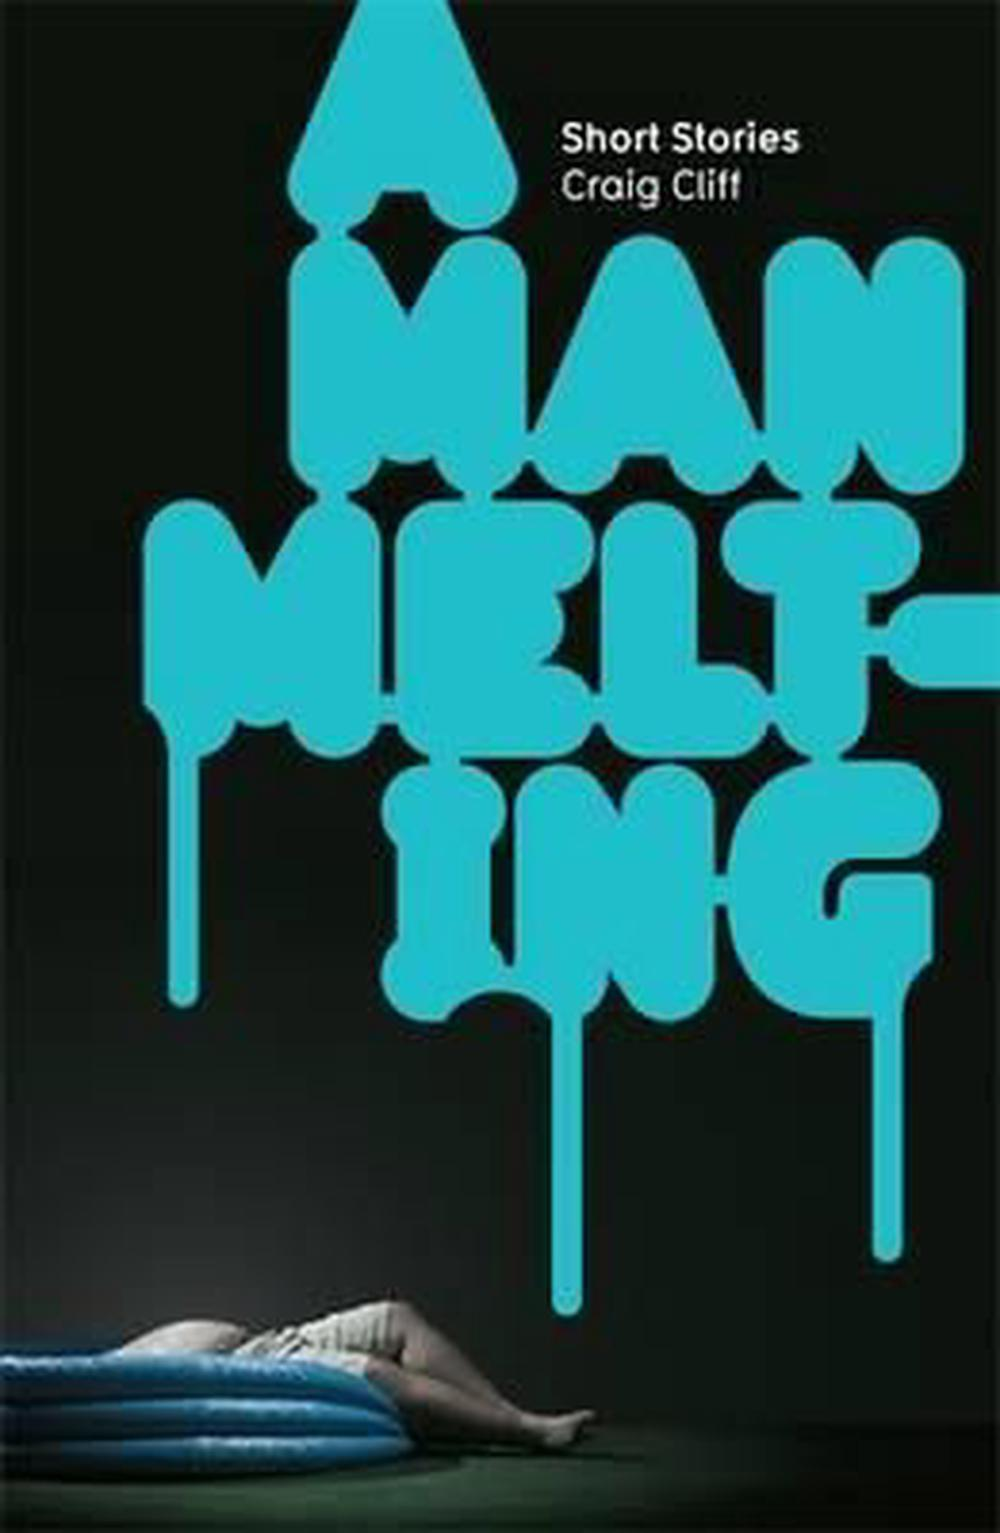 A Man Melting